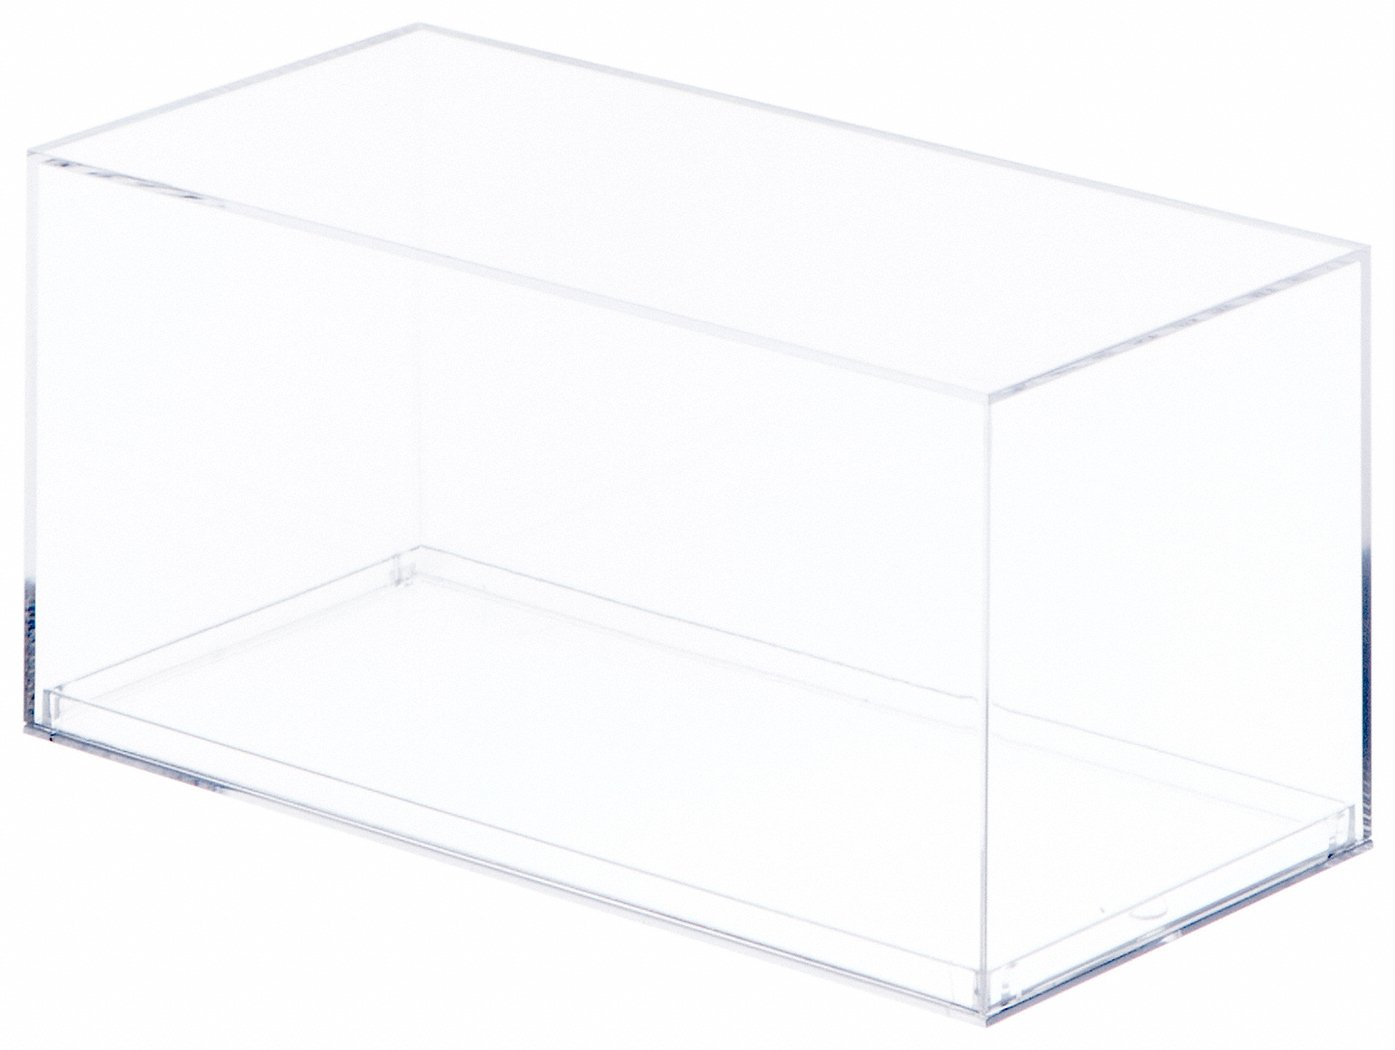 Clear Acrylic Display Case With No Beveled Edge For 1 32 Scale Cars 7.1875 x 3.8125 x 3.875